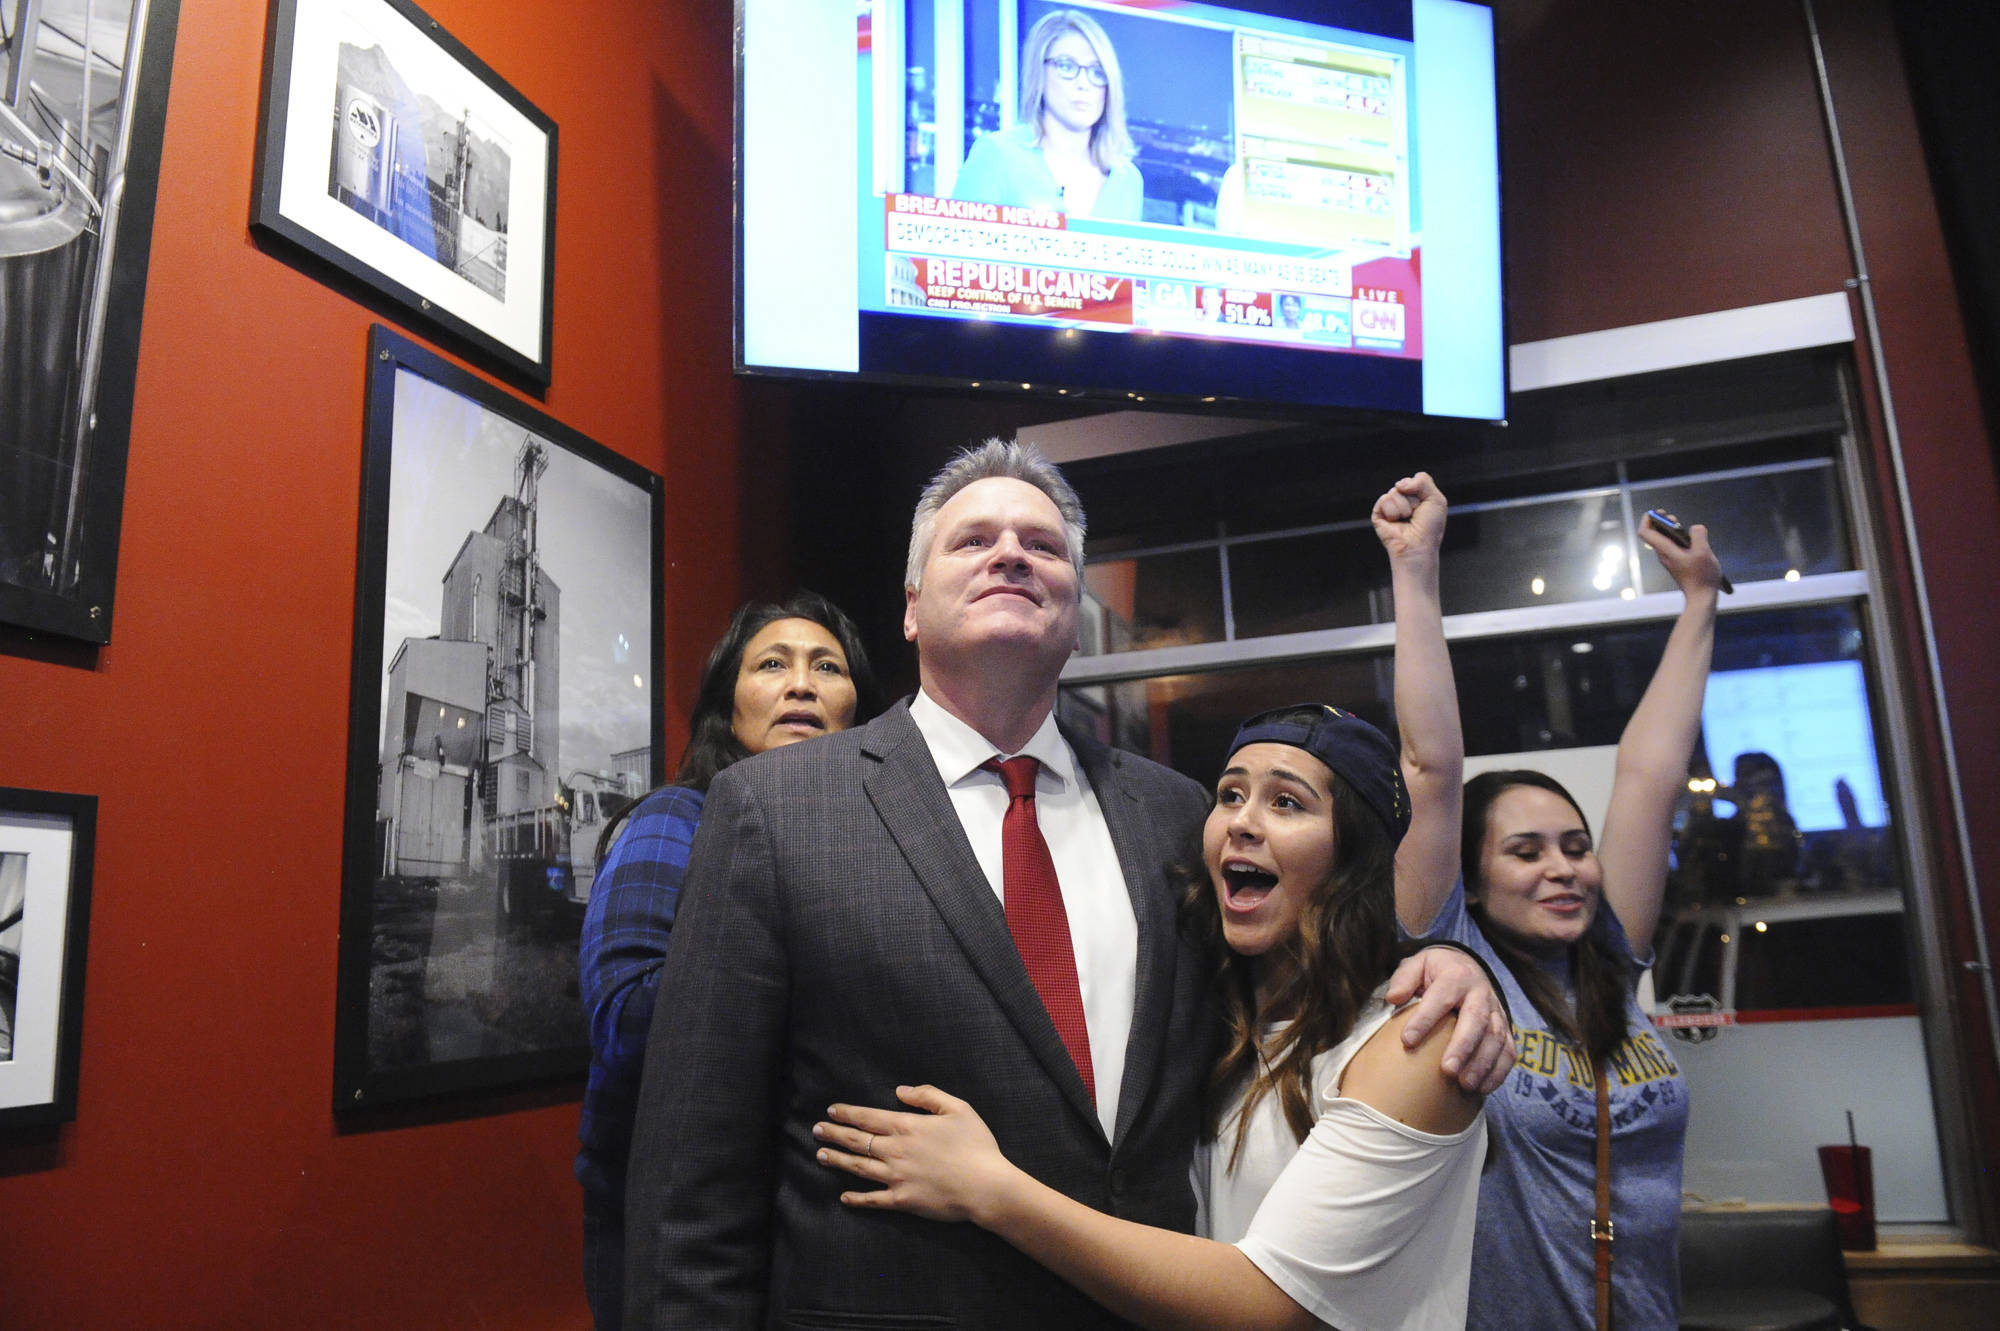 Republican gubernatorial candidate Mike Dunleavy reacts to early favorable election returns on Nov. 6, 2018 in Anchorage. With Dunleavy are from left, his wife Rose and daughters Ceil and Maggie. (Michael Dinneen | Associated Press)